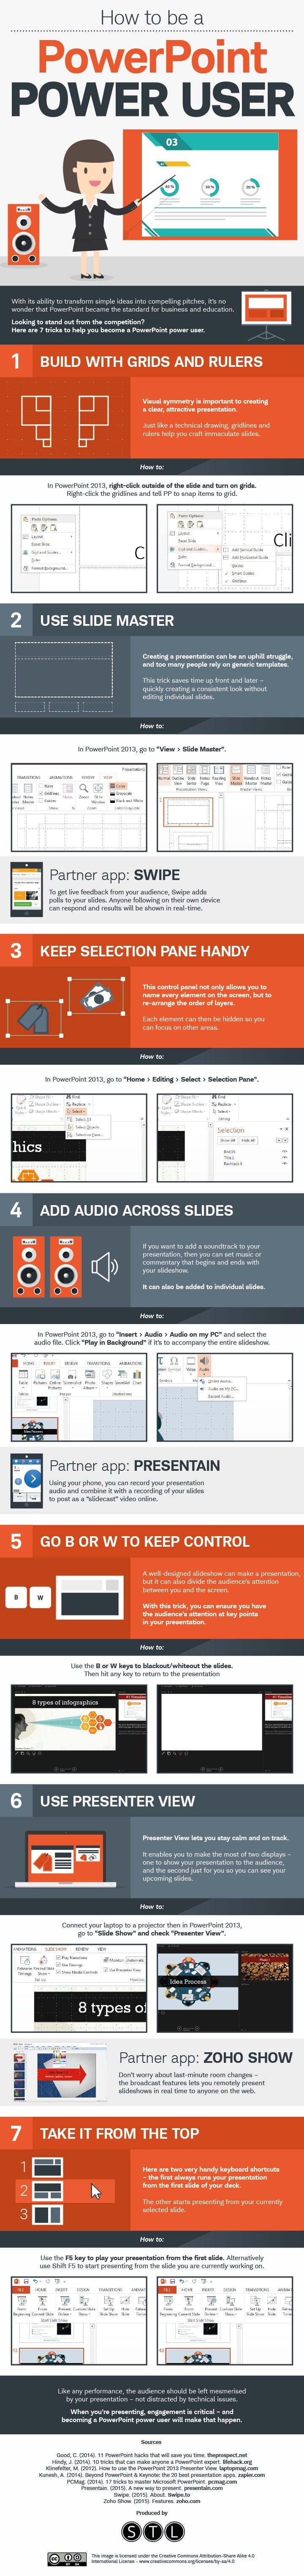 How to be a PowerPoint Power User